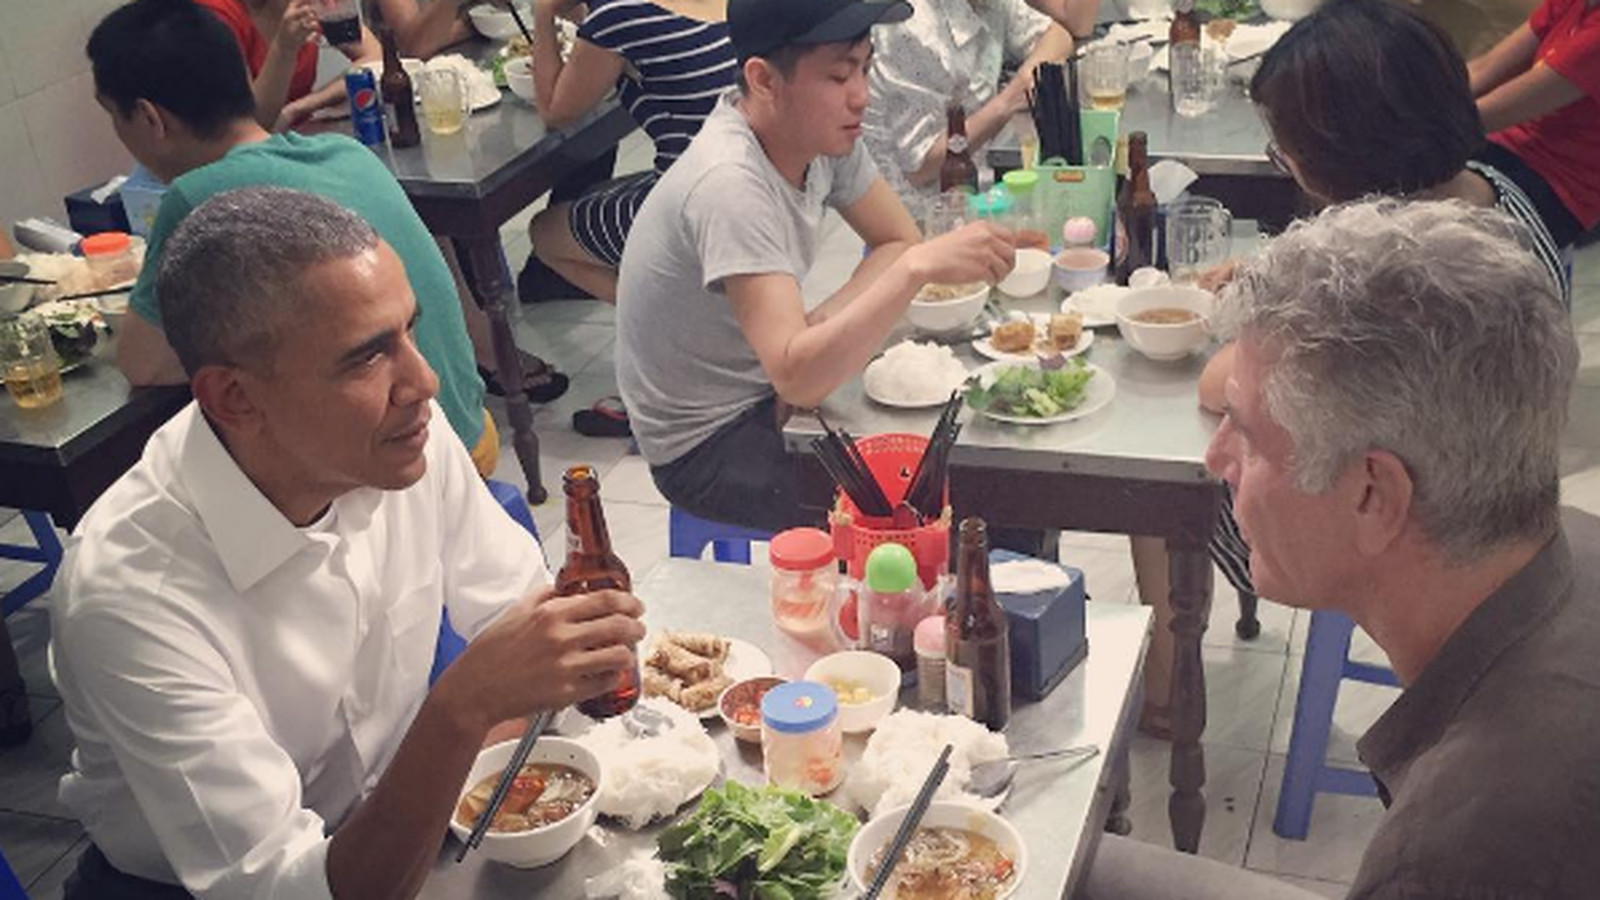 President Obama ate $6 noodles in Hanoi with Anthony Bourdain